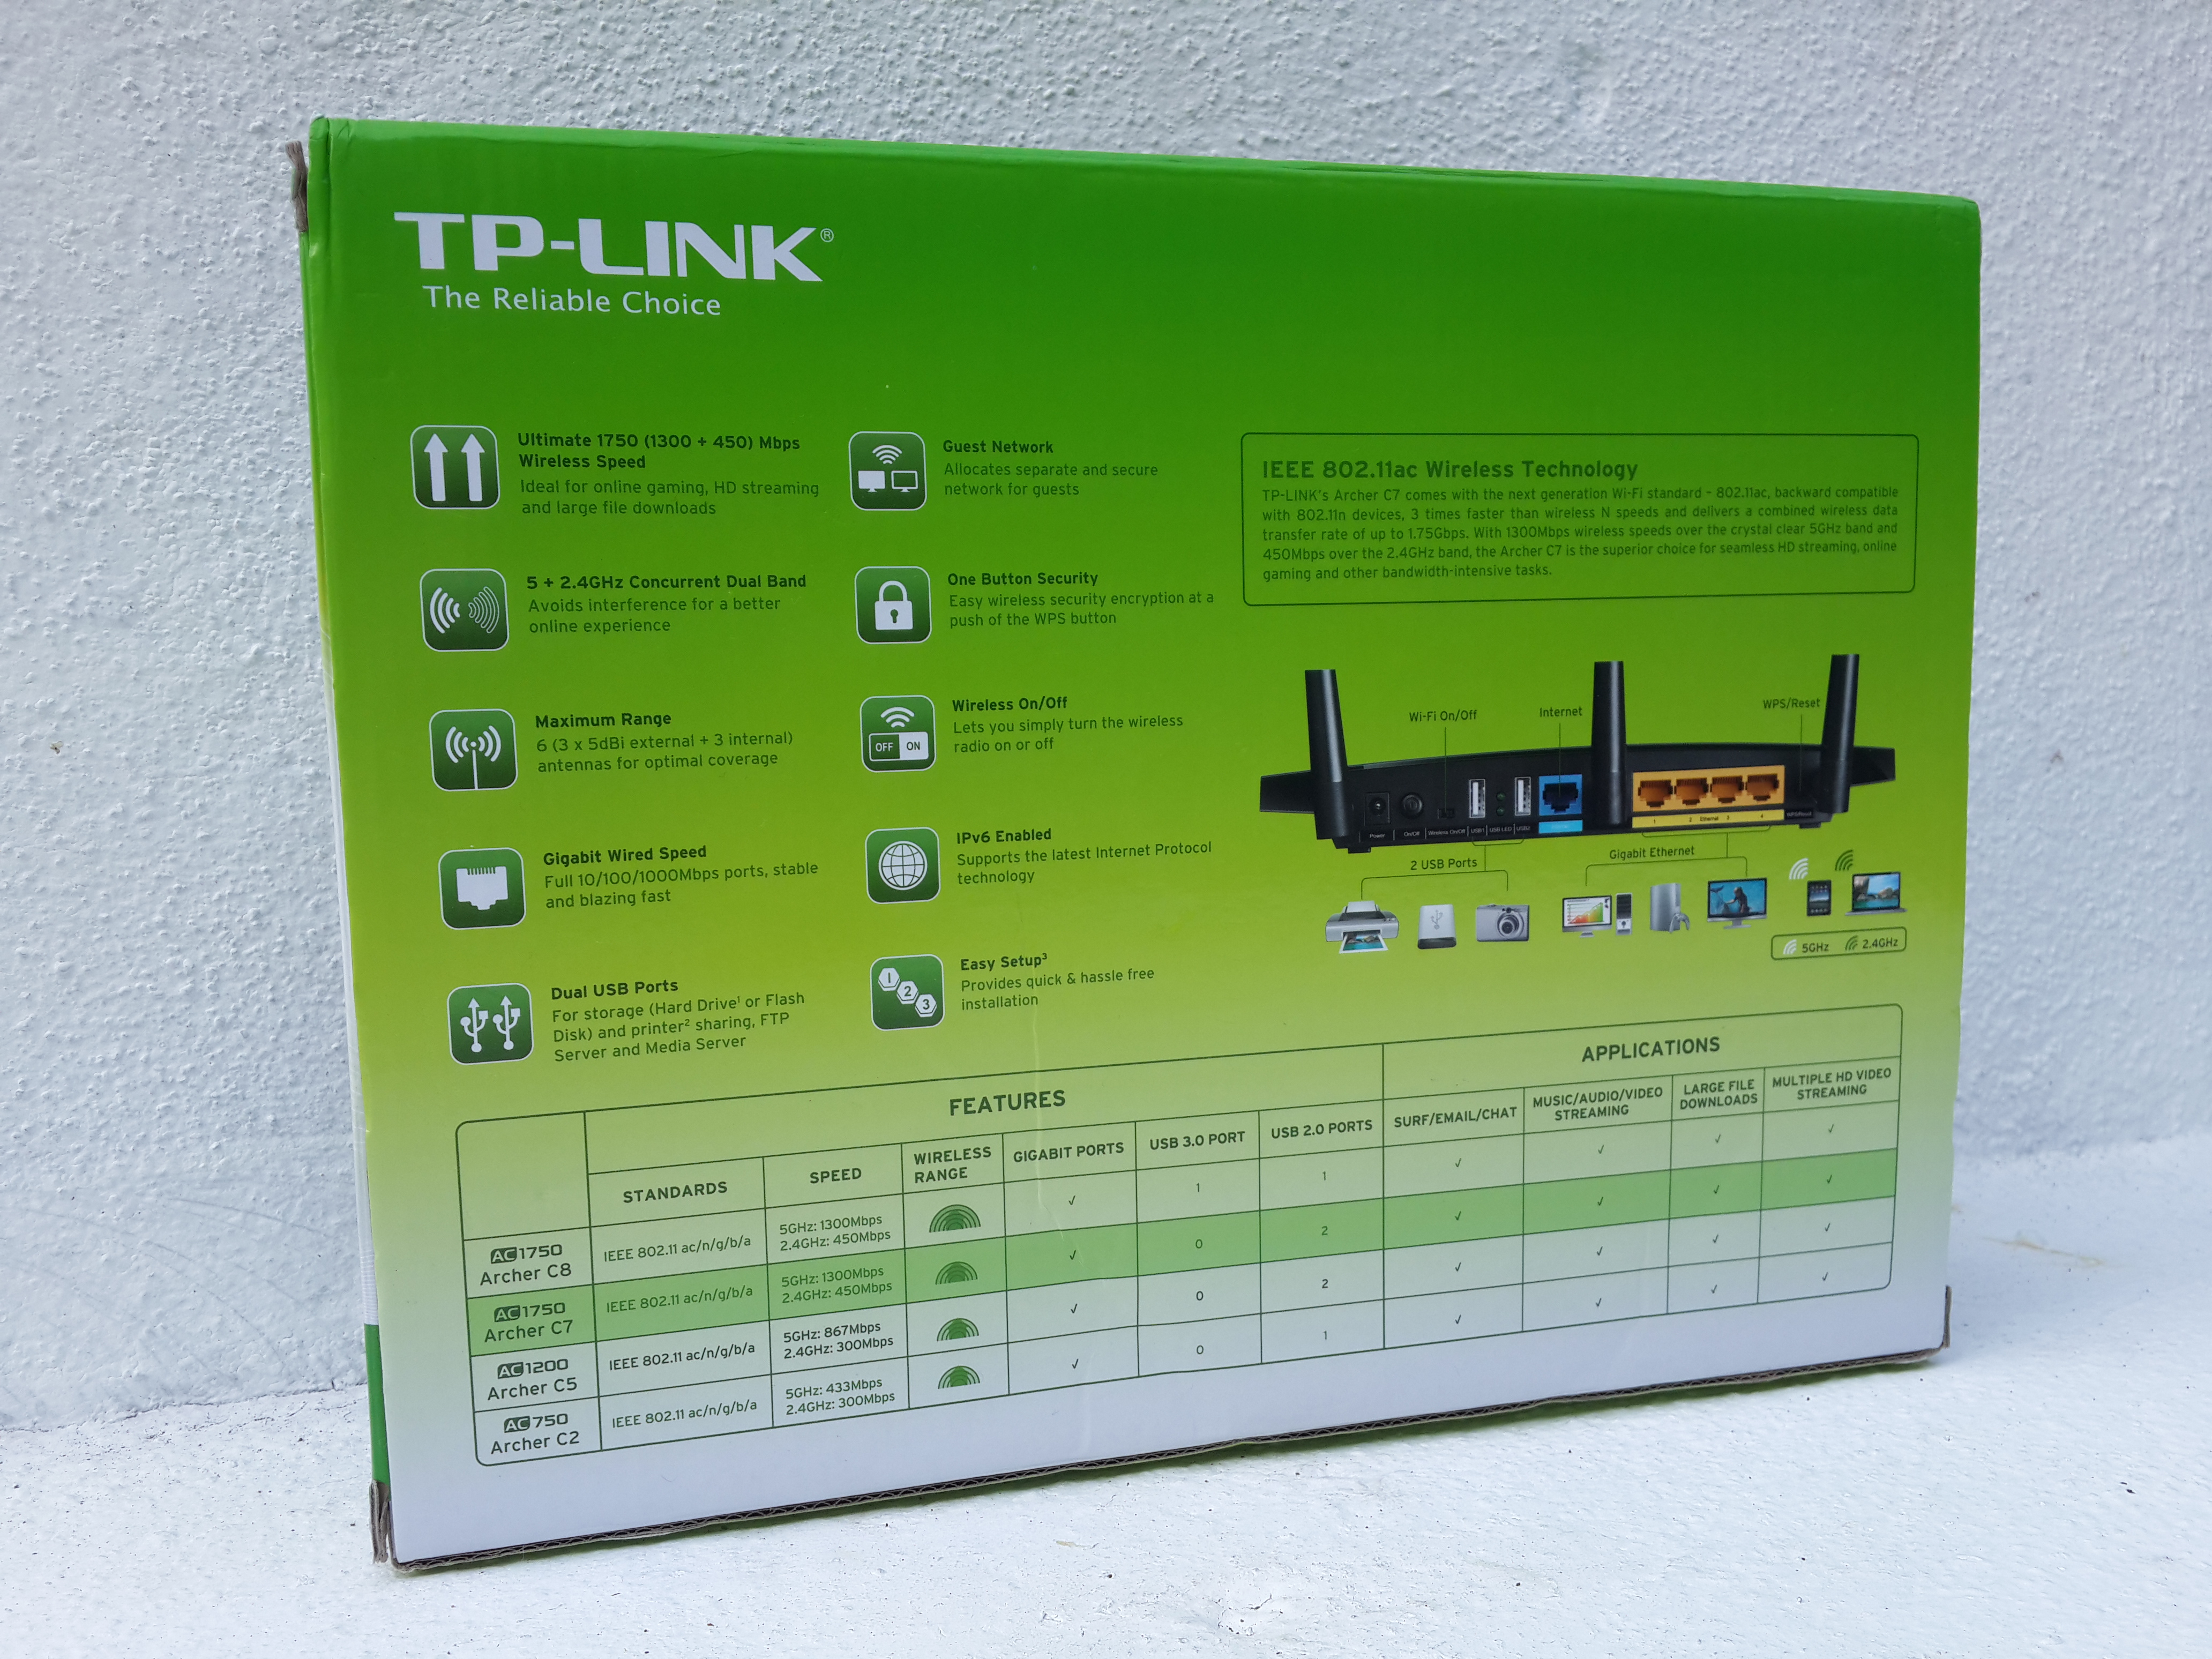 Review: TP-LINK Archer C7 AC1750 Wireless Dual Band Gigabit Router